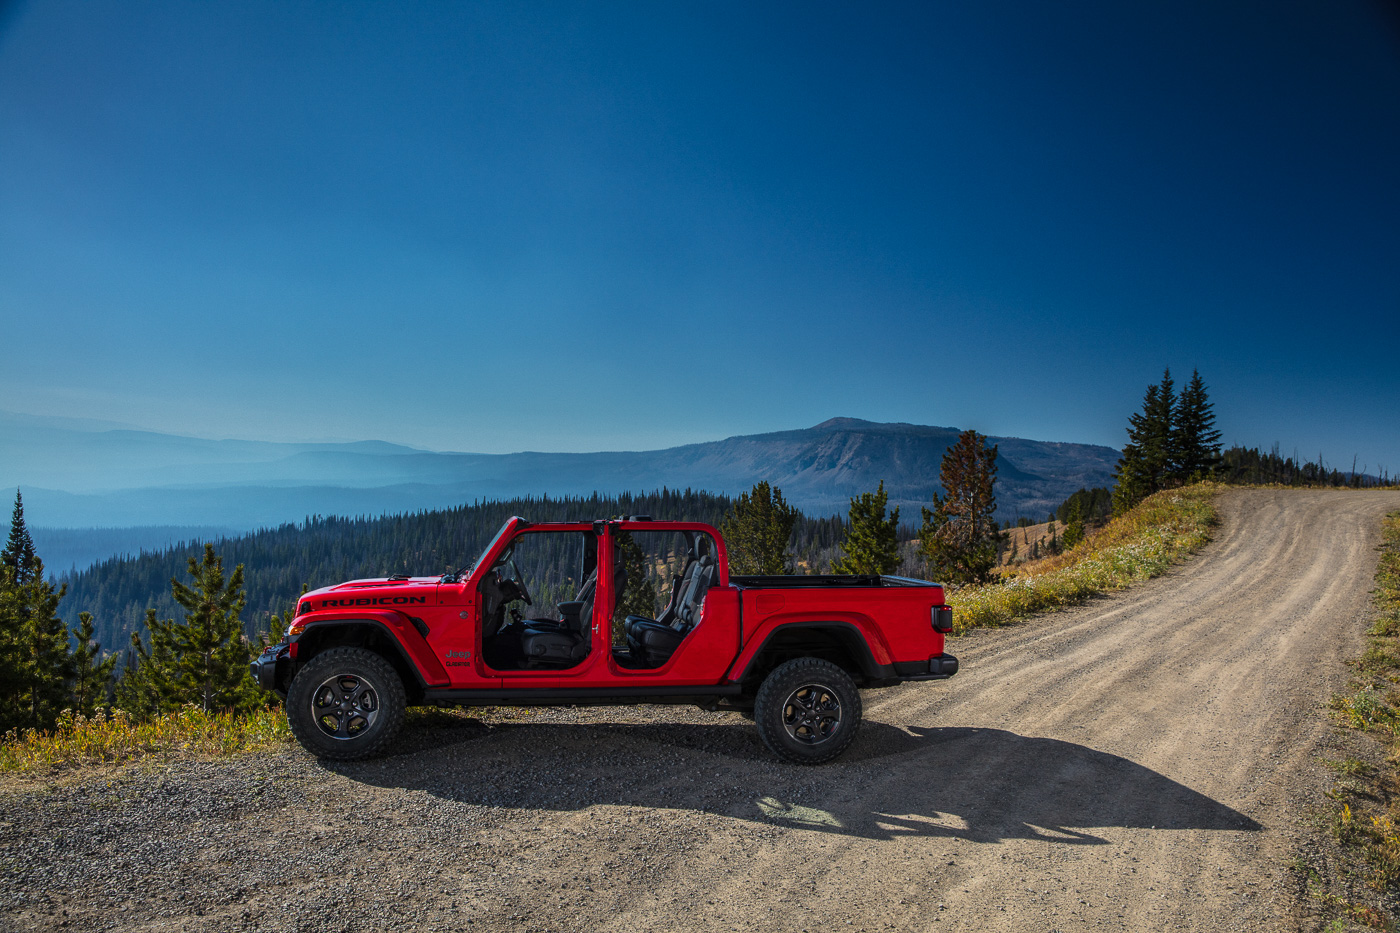 Jeep-Gladiator-Rubicon-46.jpg